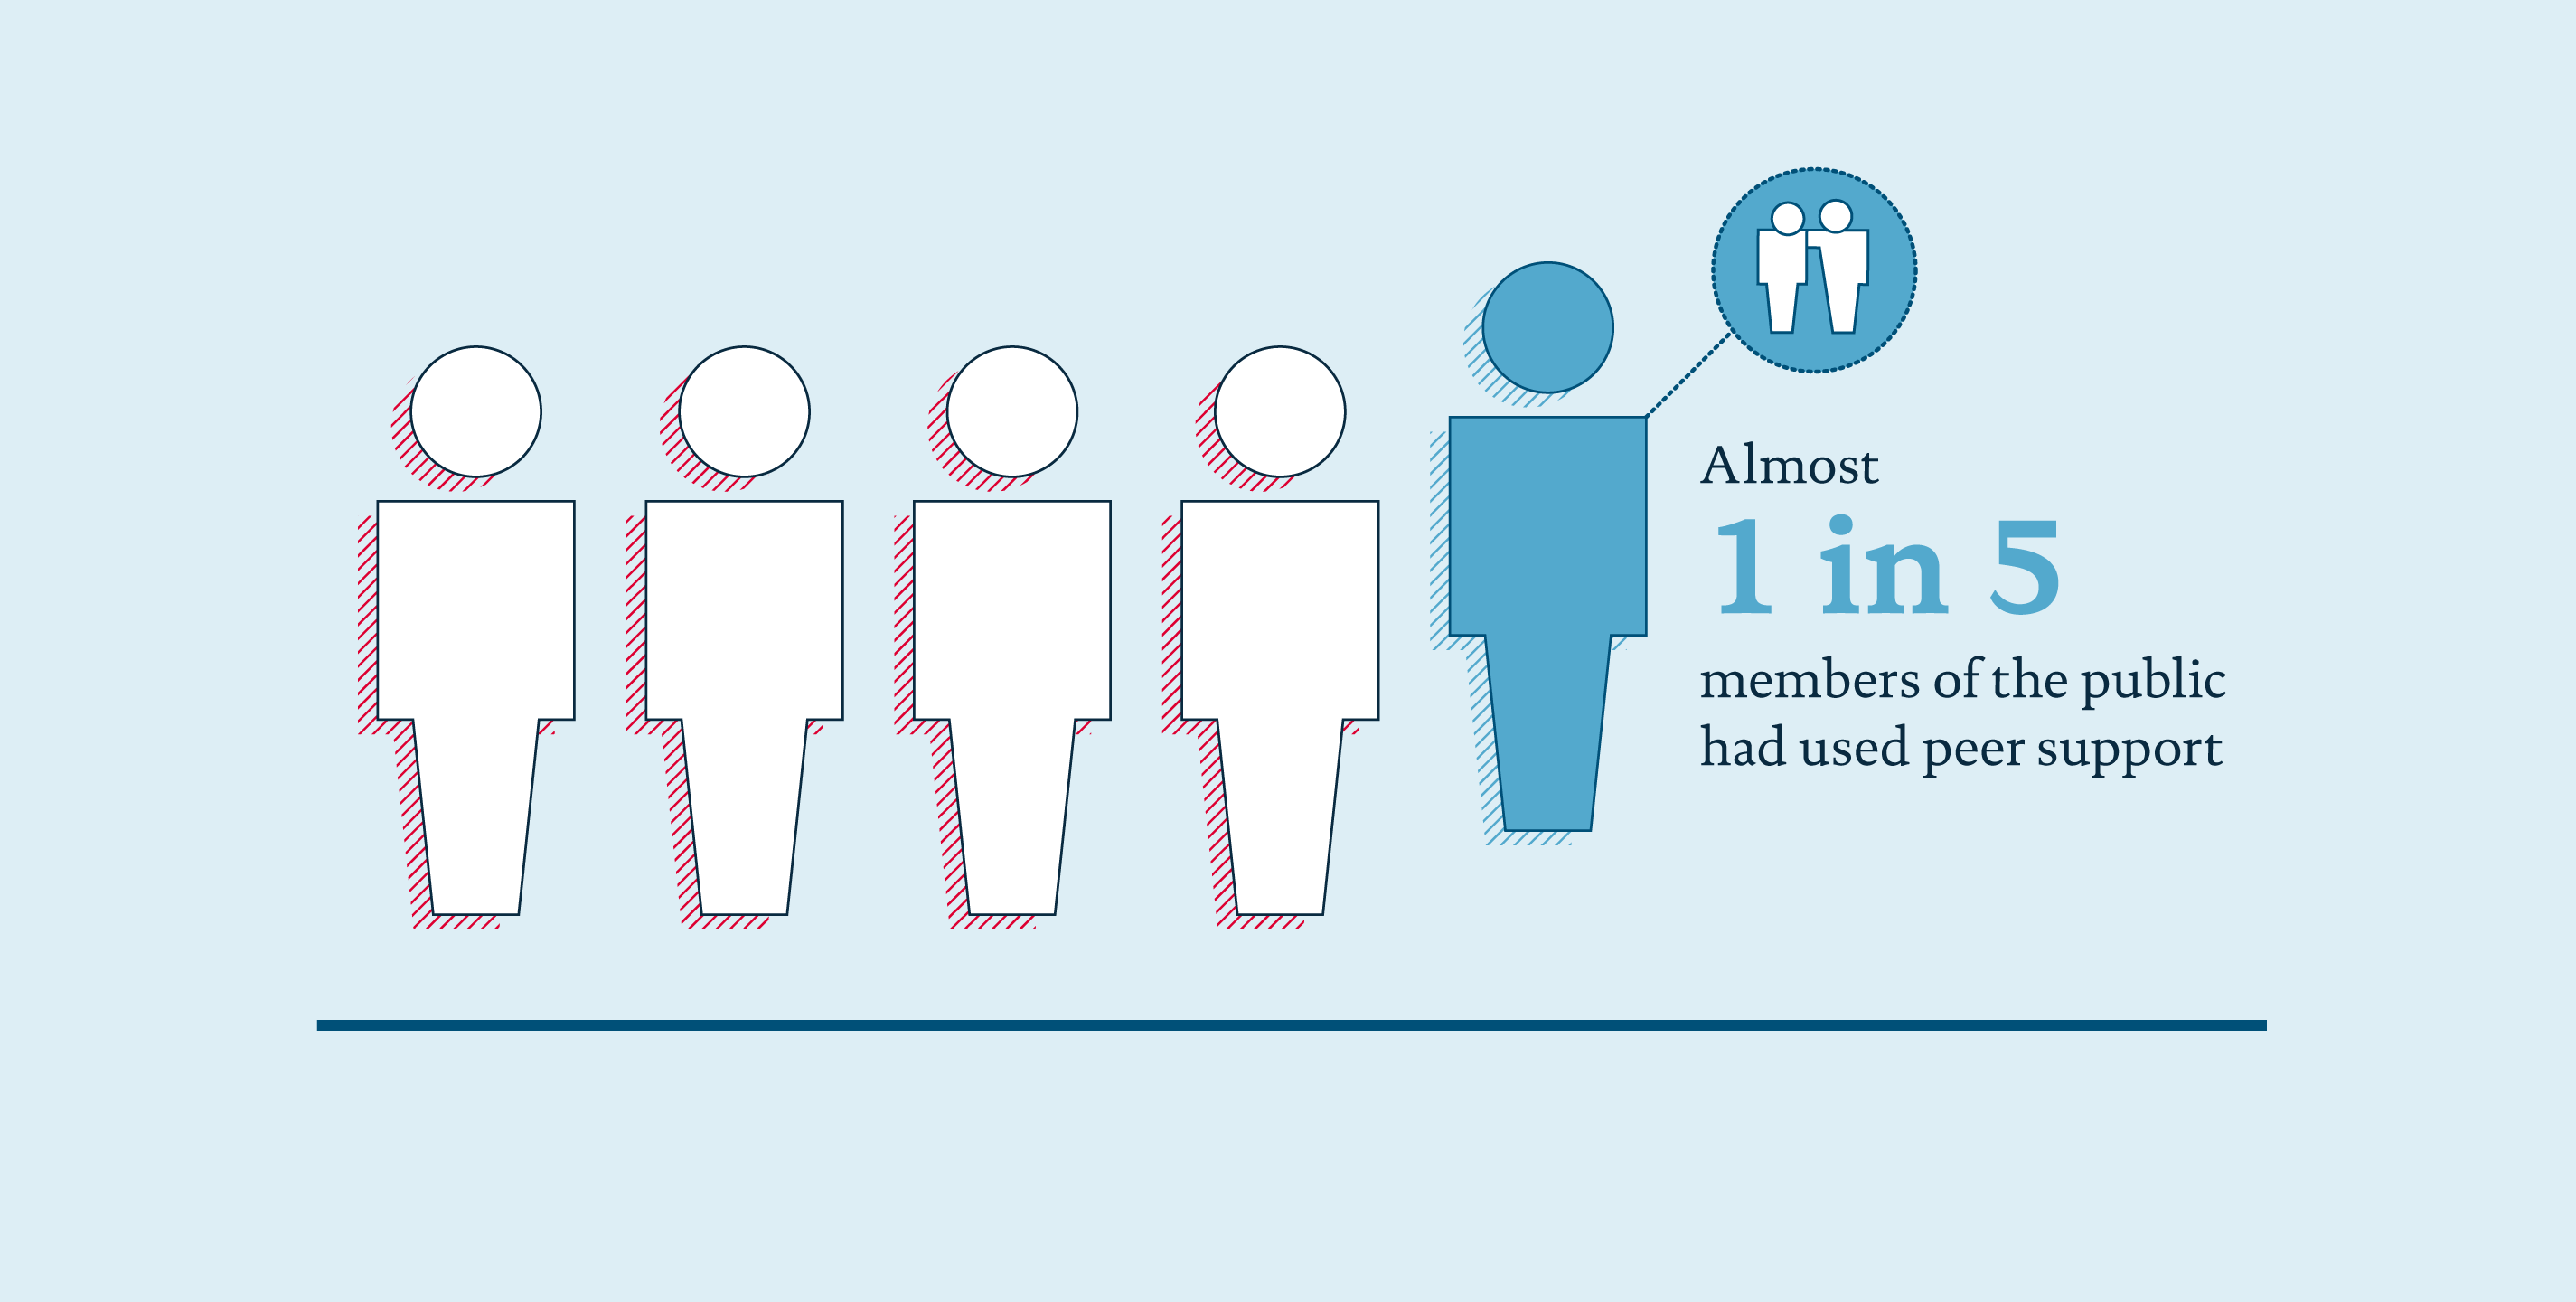 Infographic from peer support survey showing 1 in 5 members of the public who had used peer support